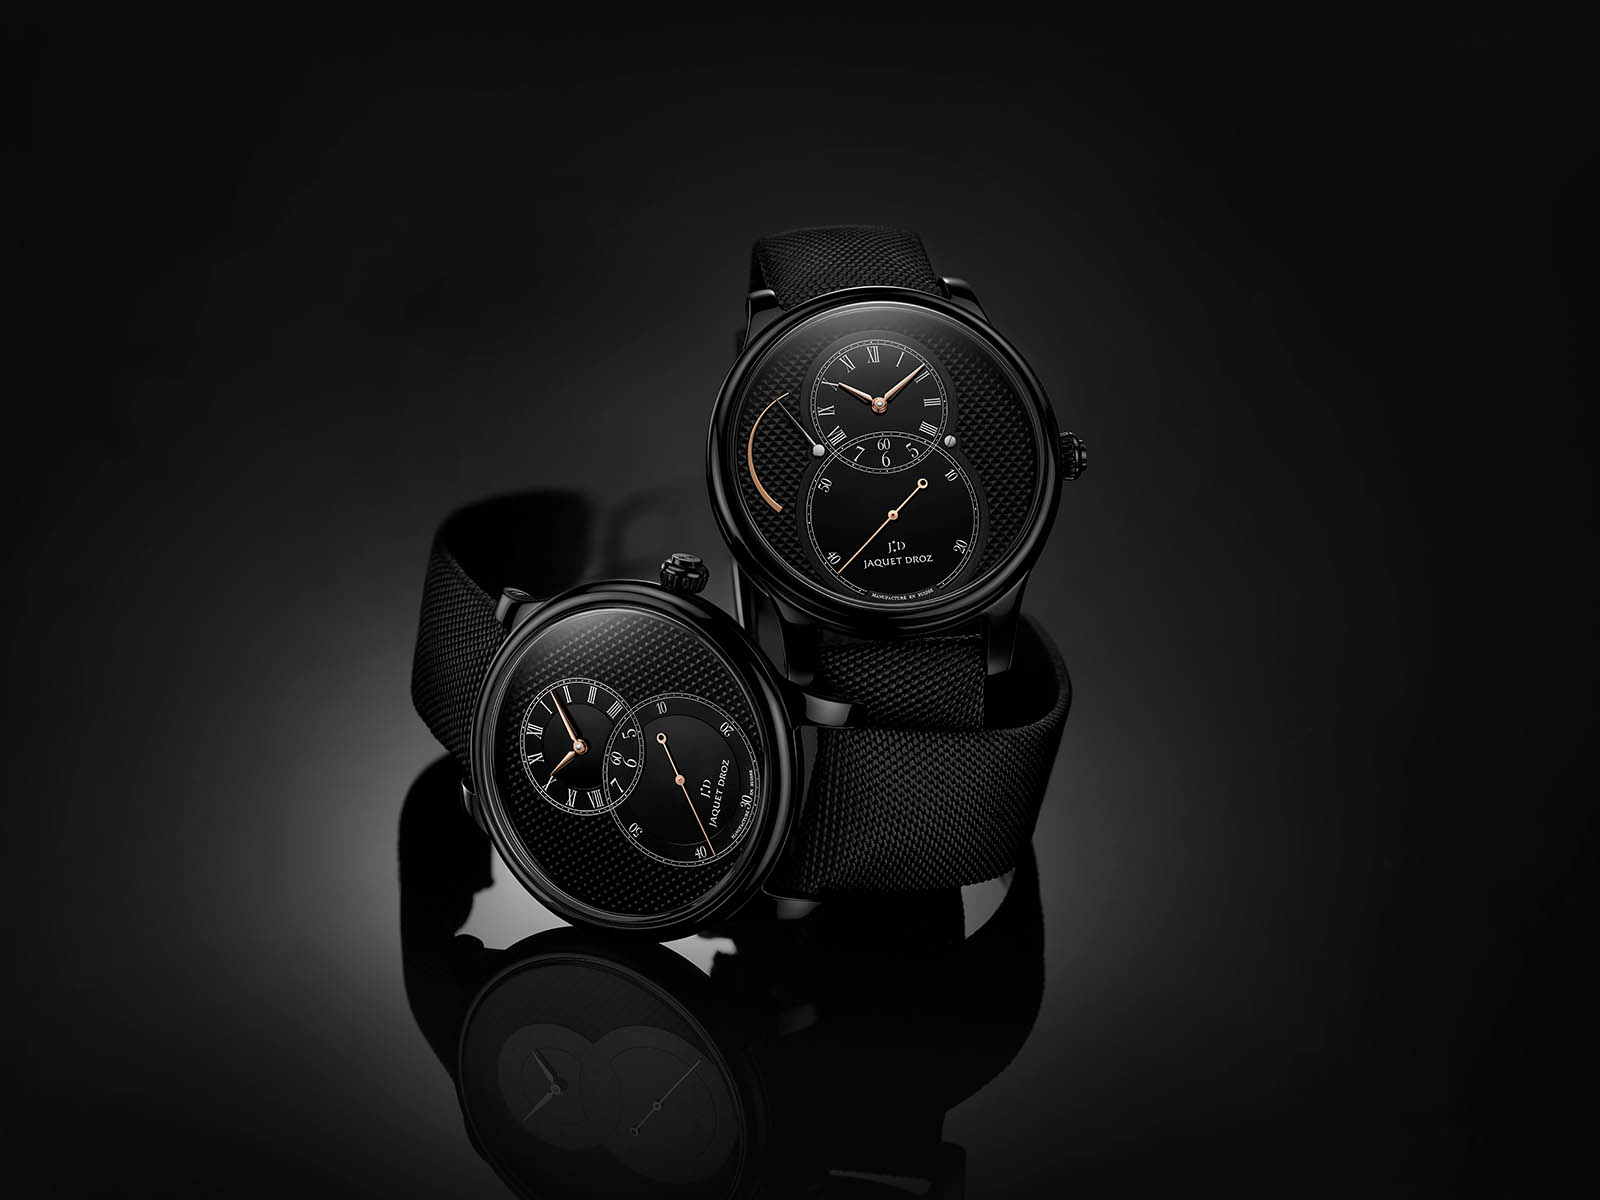 Jaquet-Droz-Grande-Seconde-Black-Ceramic-Clous-De-Paris-1.jpg